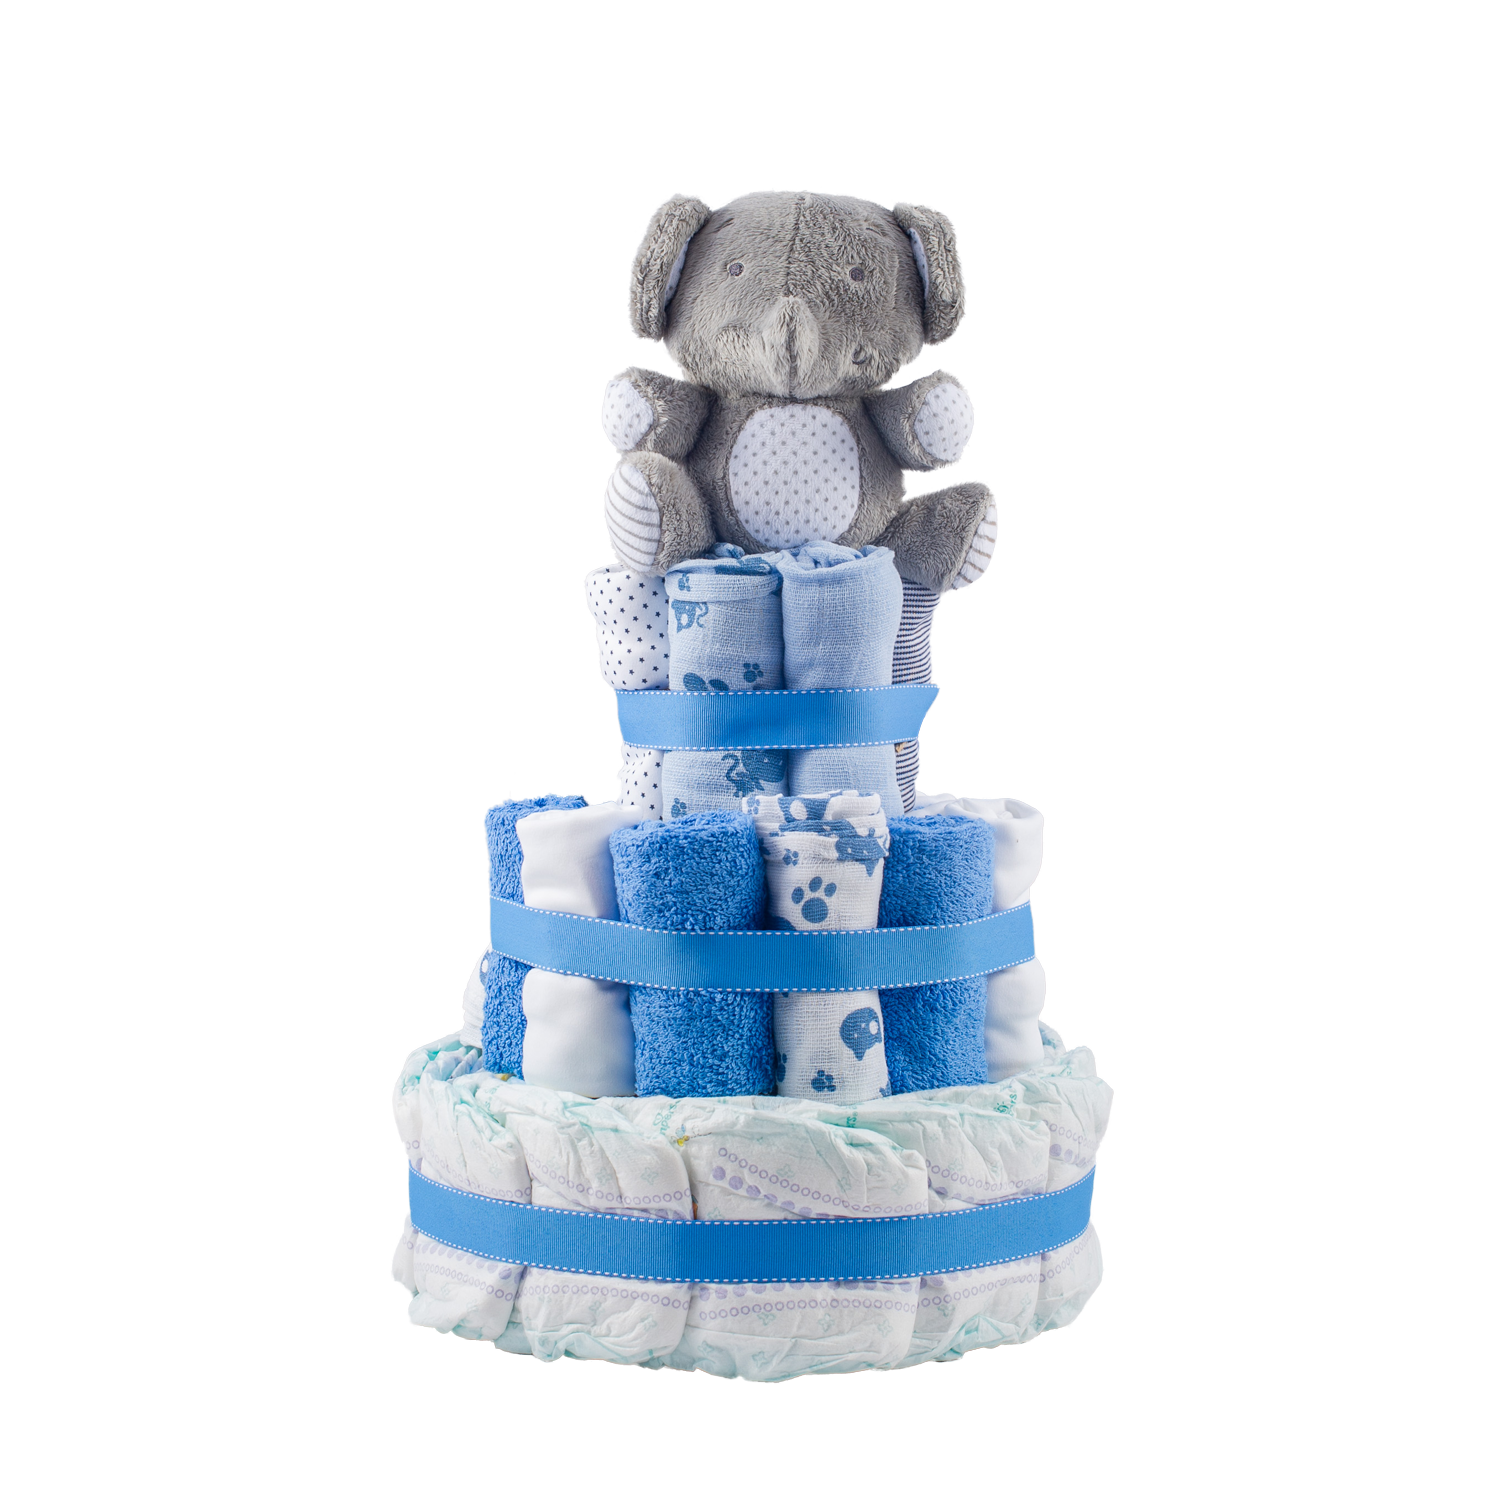 Stylish 3-Tier Blue Nappy Cake